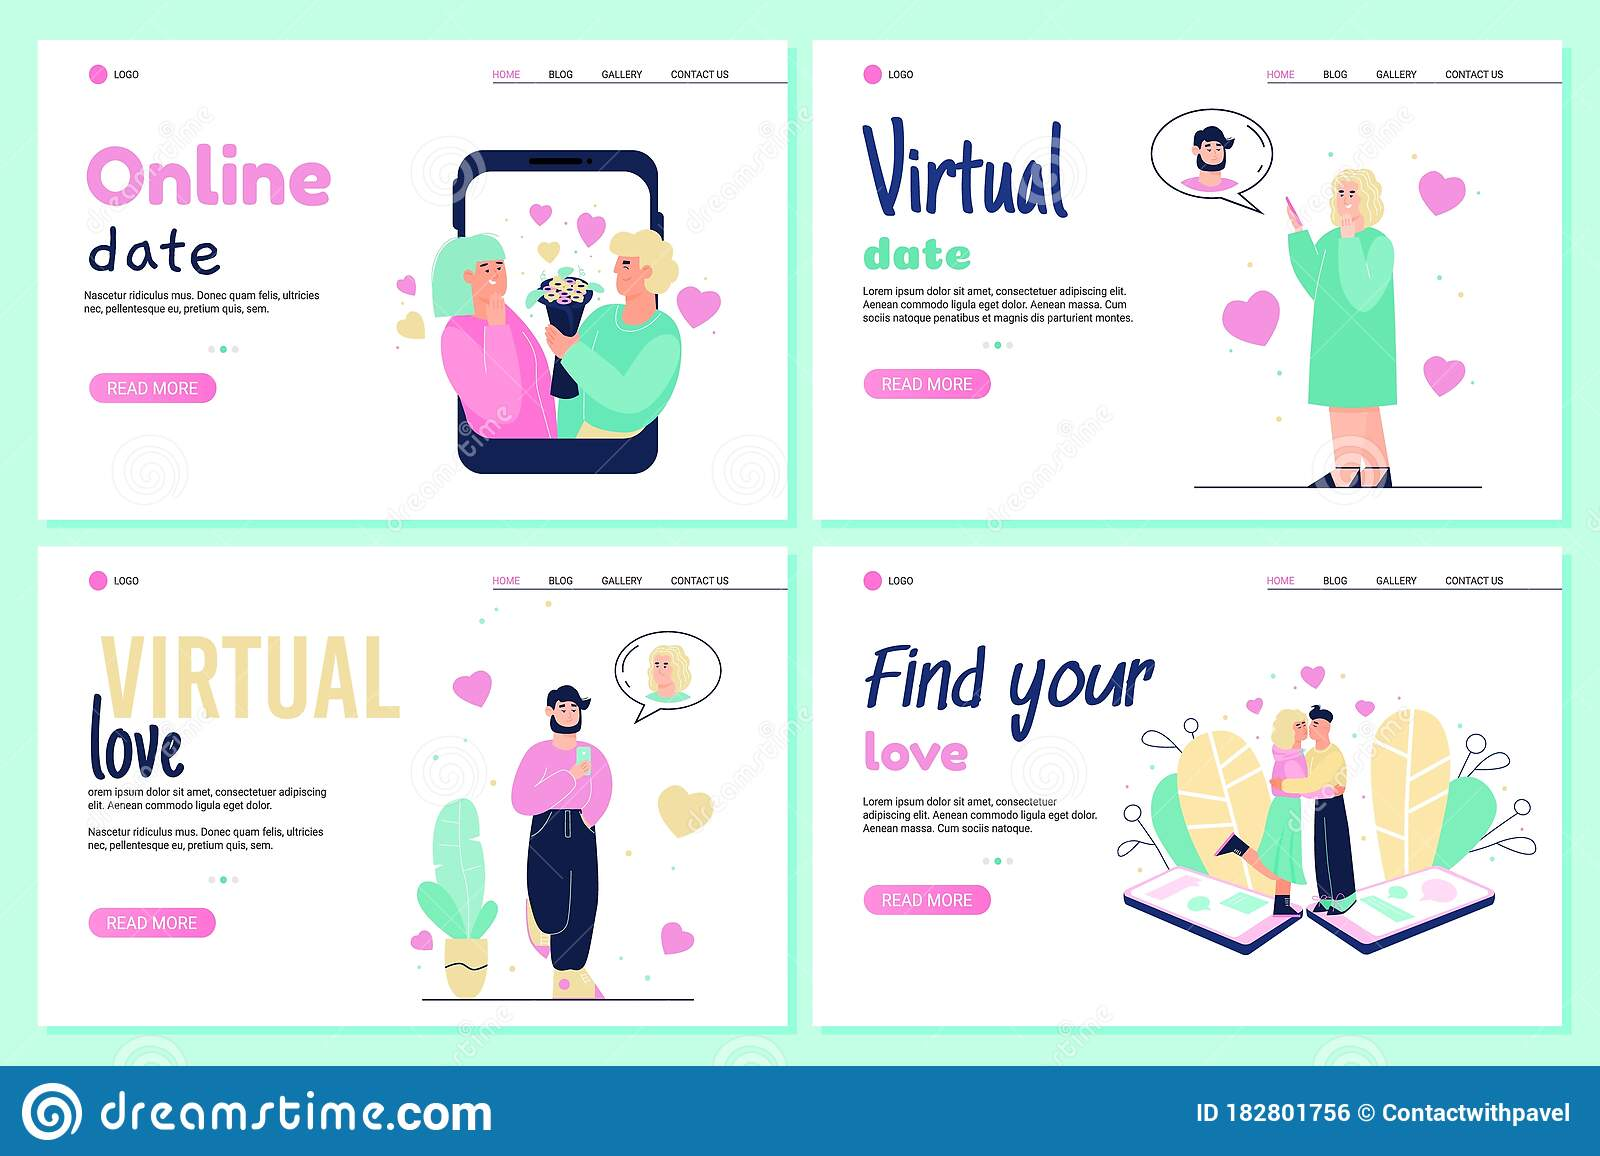 married dating websites reviews